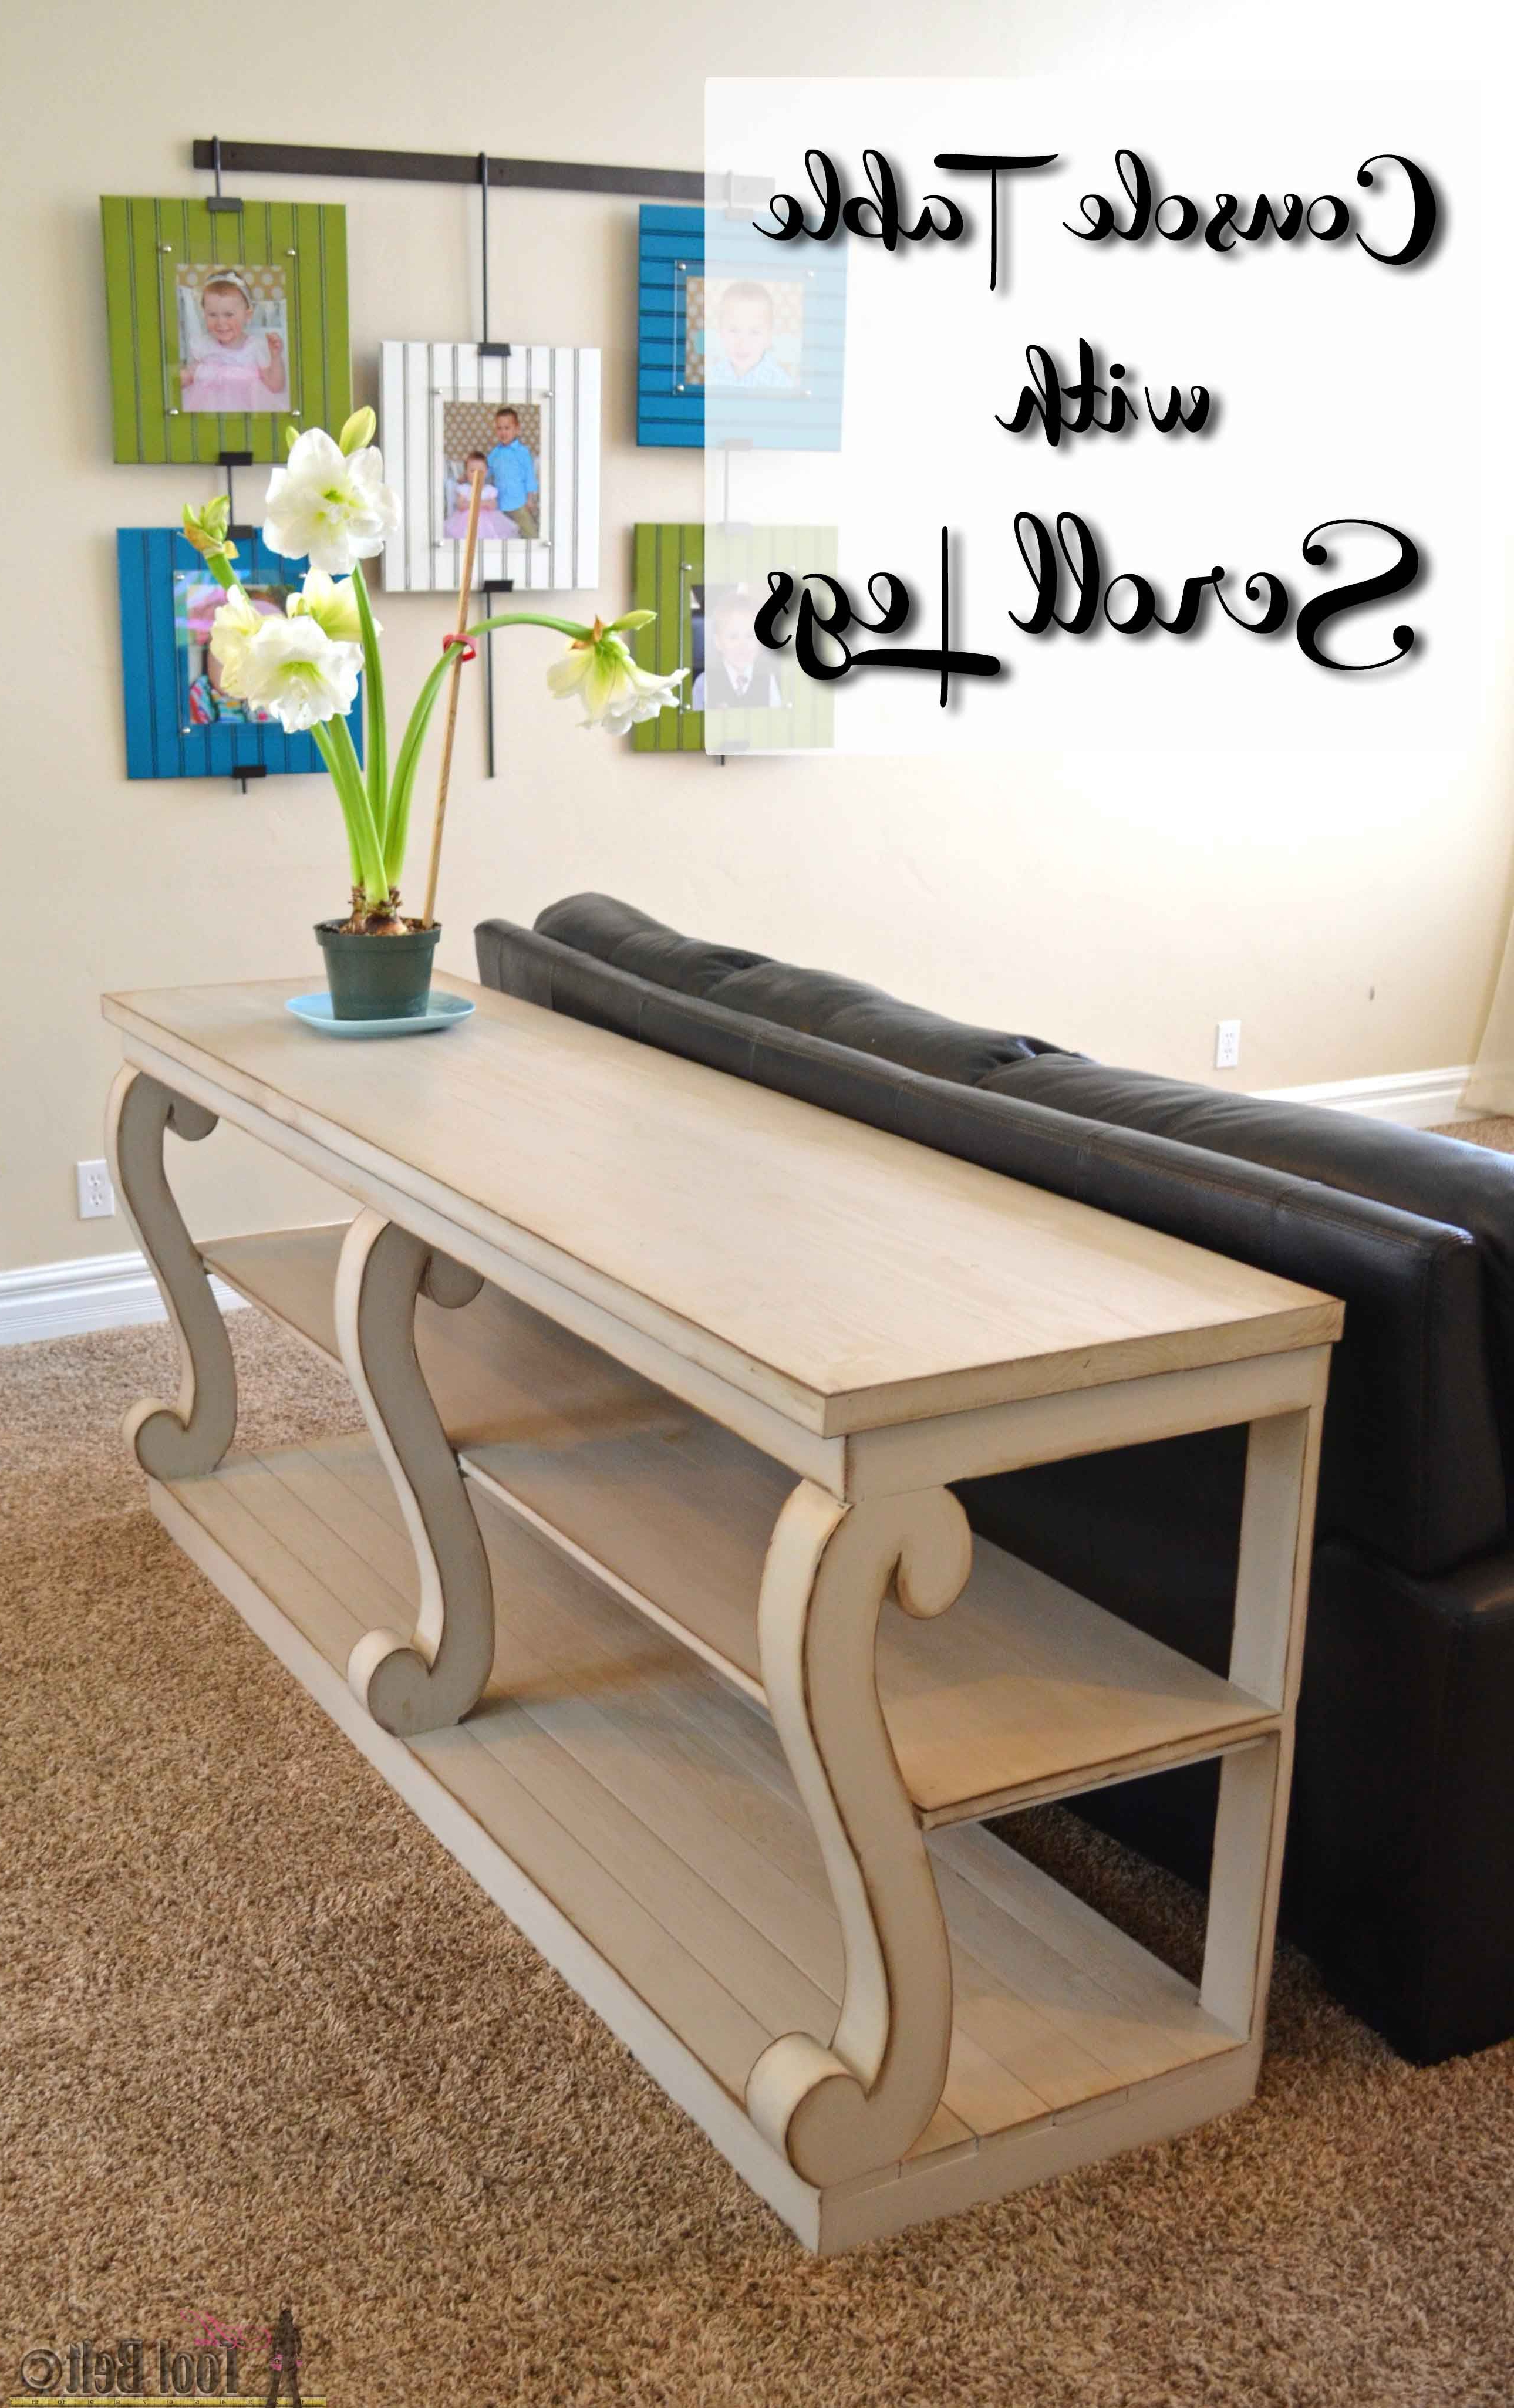 Walters Media Console Tables Throughout Favorite Console Table With Scroll Legs (View 18 of 20)